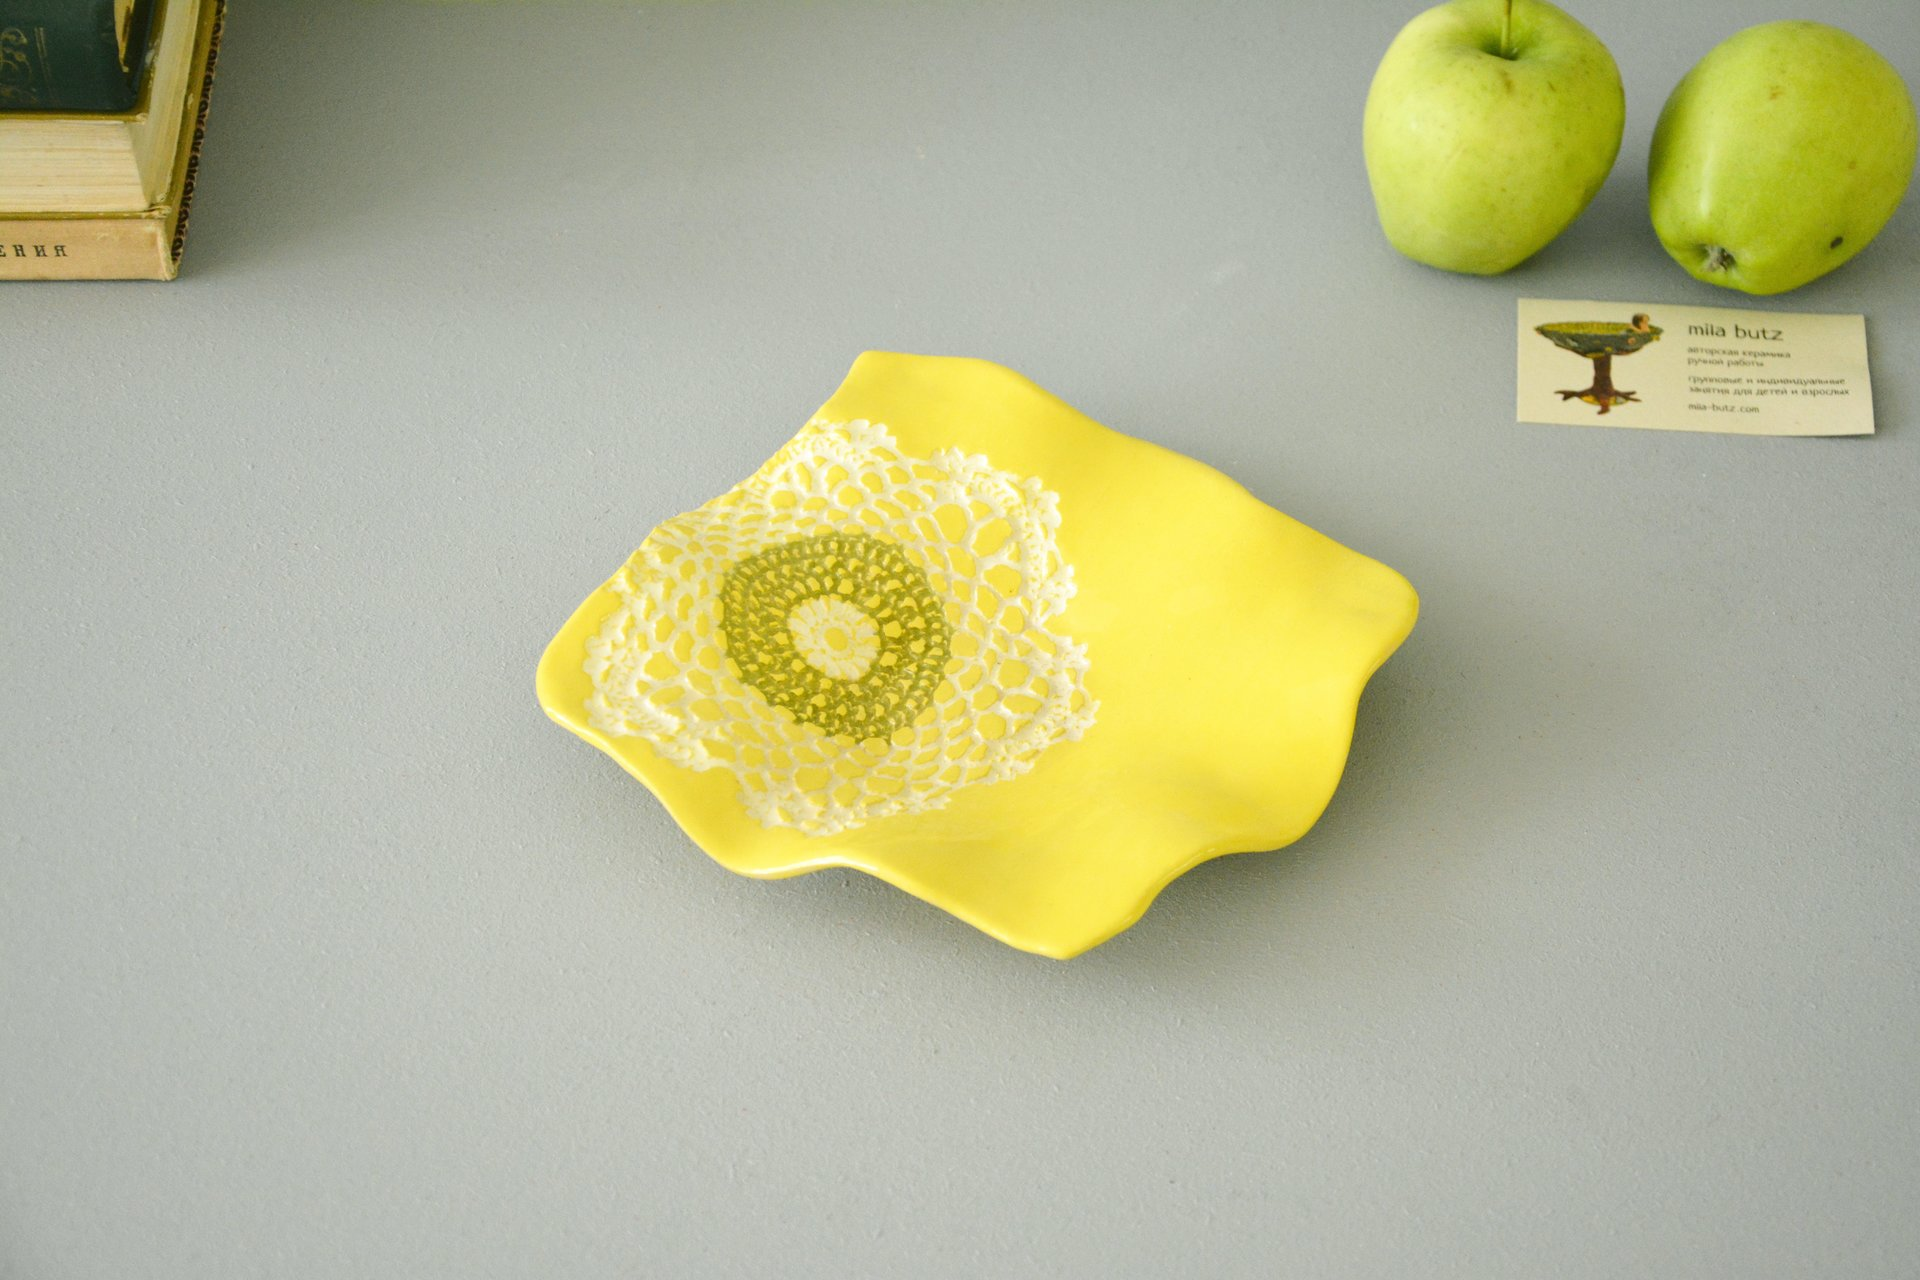 Ceramic plate of yellow square shape, width*height - 17 * 18 cm, height - 3.5 cm, photo 1 of 4.